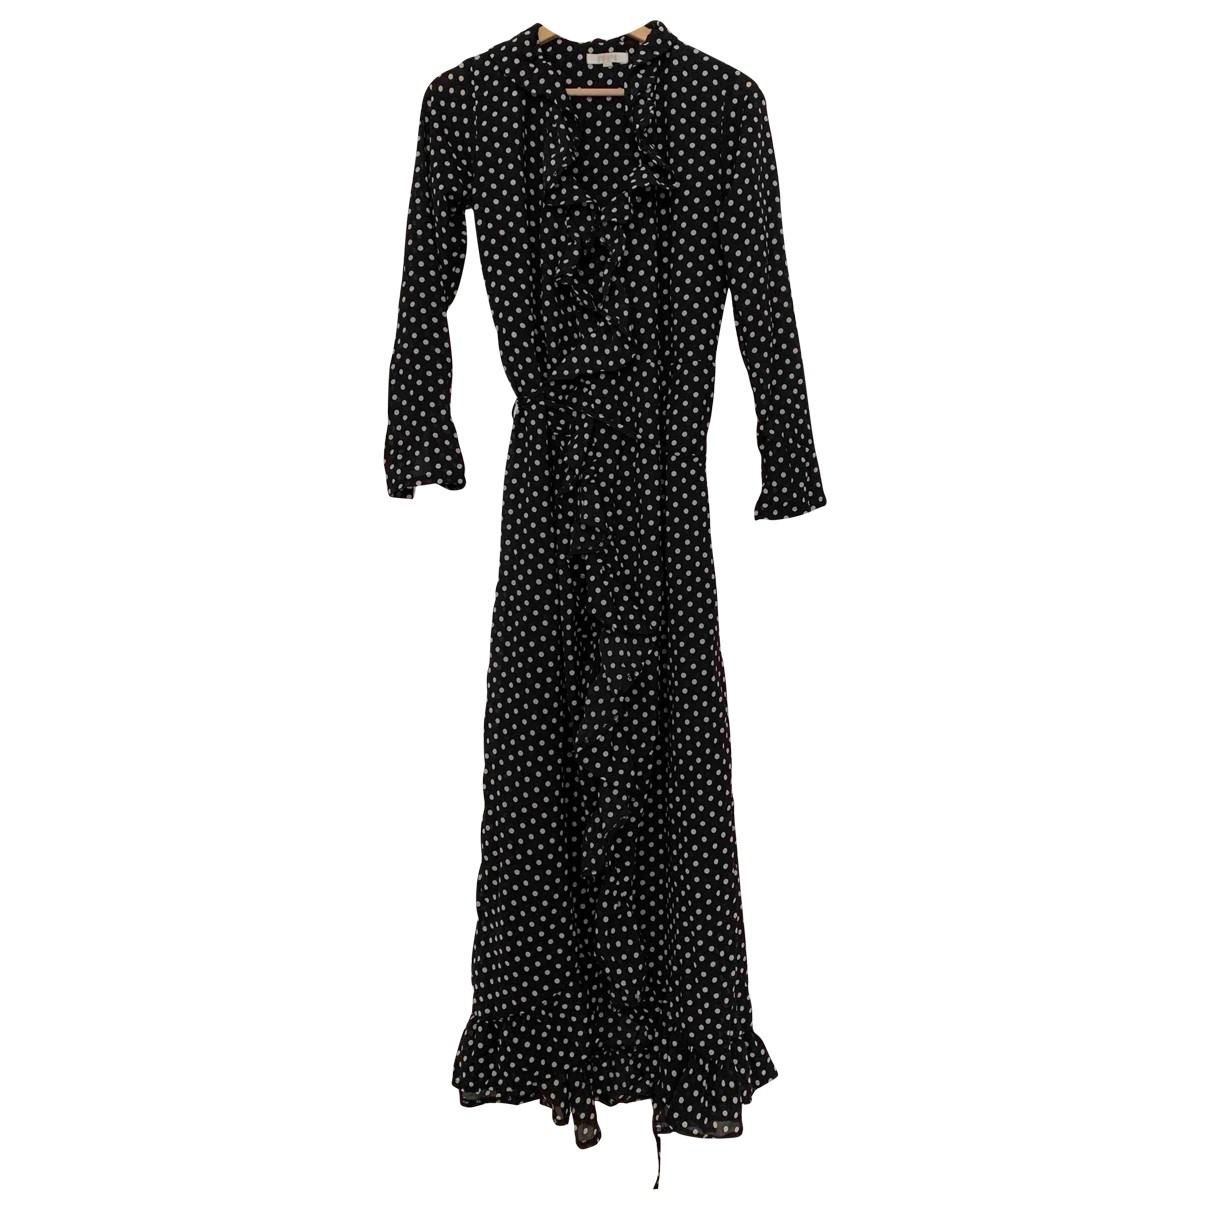 Posse \N Black dress for Women S International